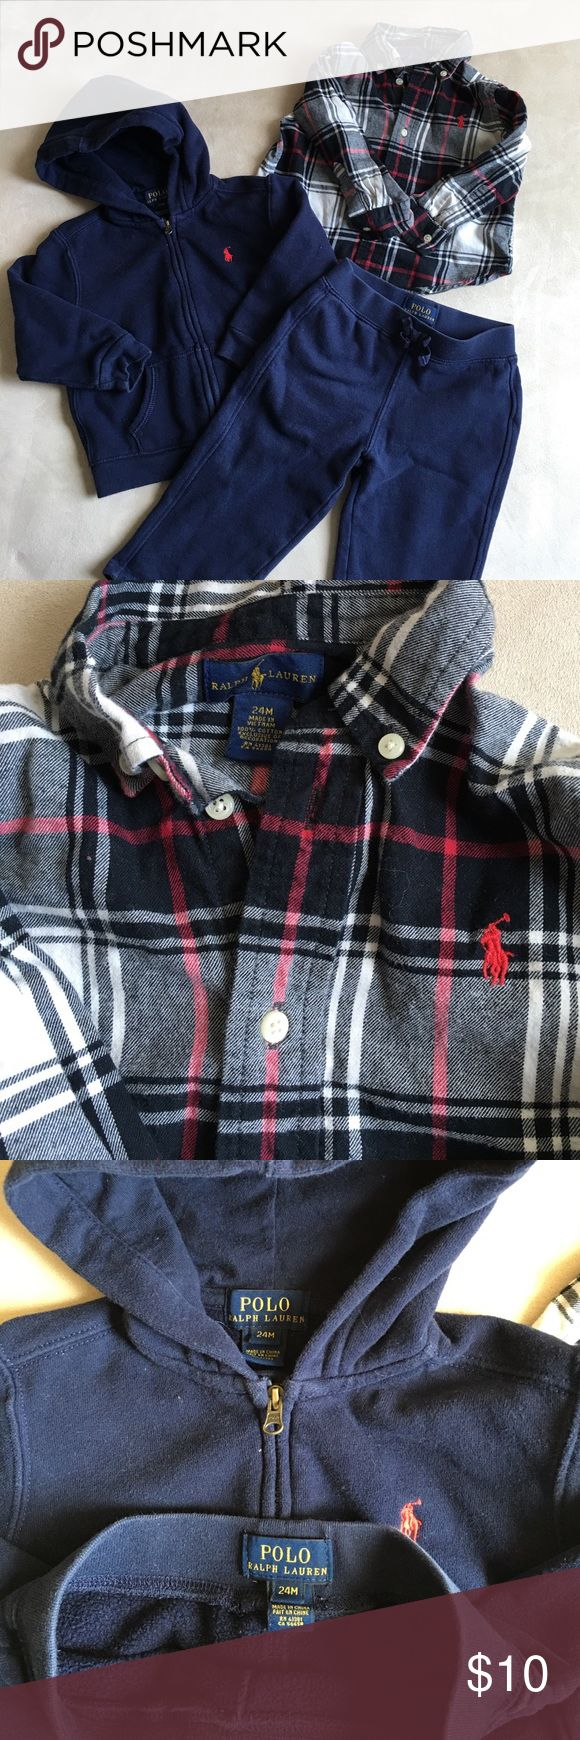 Ralph Lauren bundle Polo Ralph Lauren zip up hoodie and sweatpants - color is dark blue - Ralph Lauren black, white and red, long sleeved, button up shirt - both are size 24months - both have been lightly used. Ralph Lauren Shirts & Tops